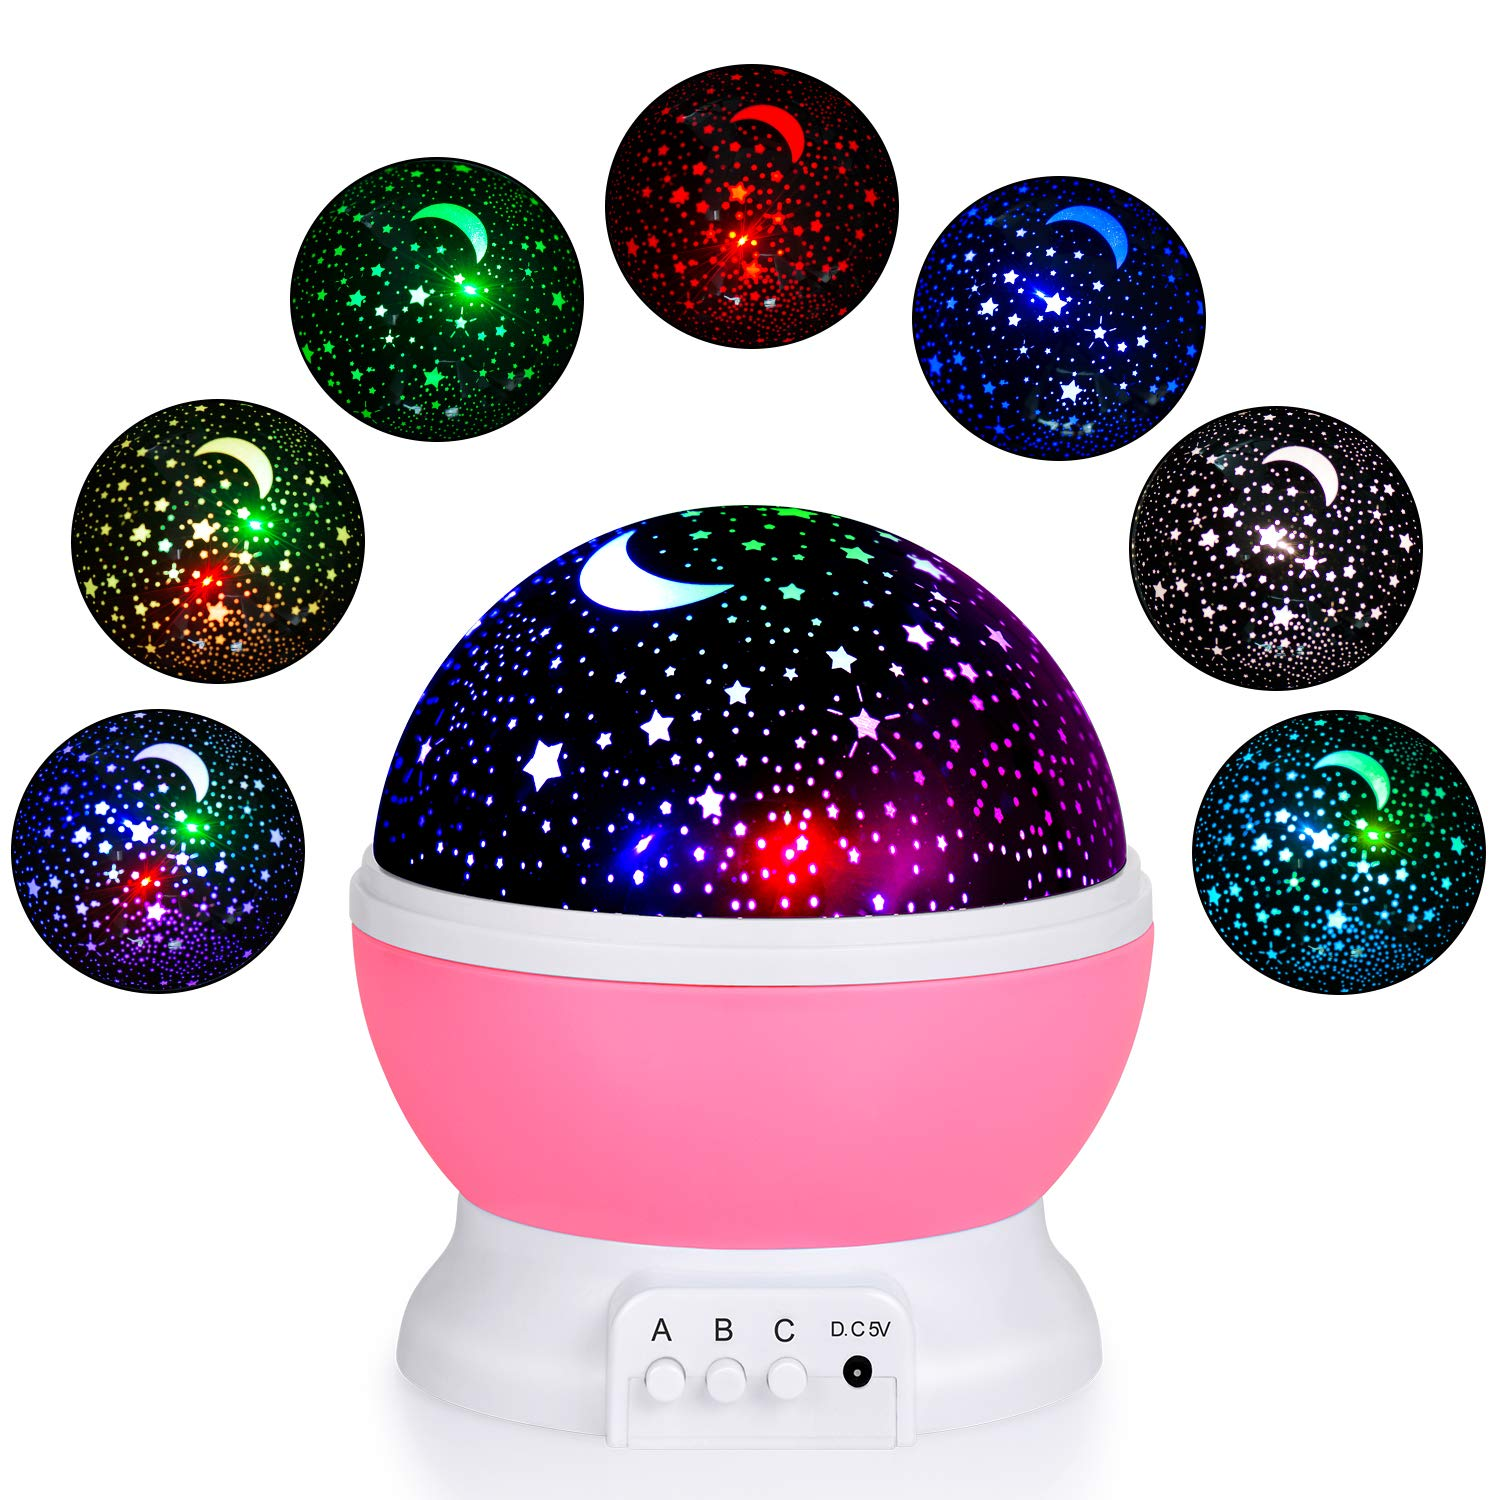 EOMOO Baby Night Lights for kids,Starry Night Light Rotating Moon Stars Projector, 7 Color Options Romantic Night Lighting Lamp, USB Cable/Batteries Powered for Nursery, Bedroom